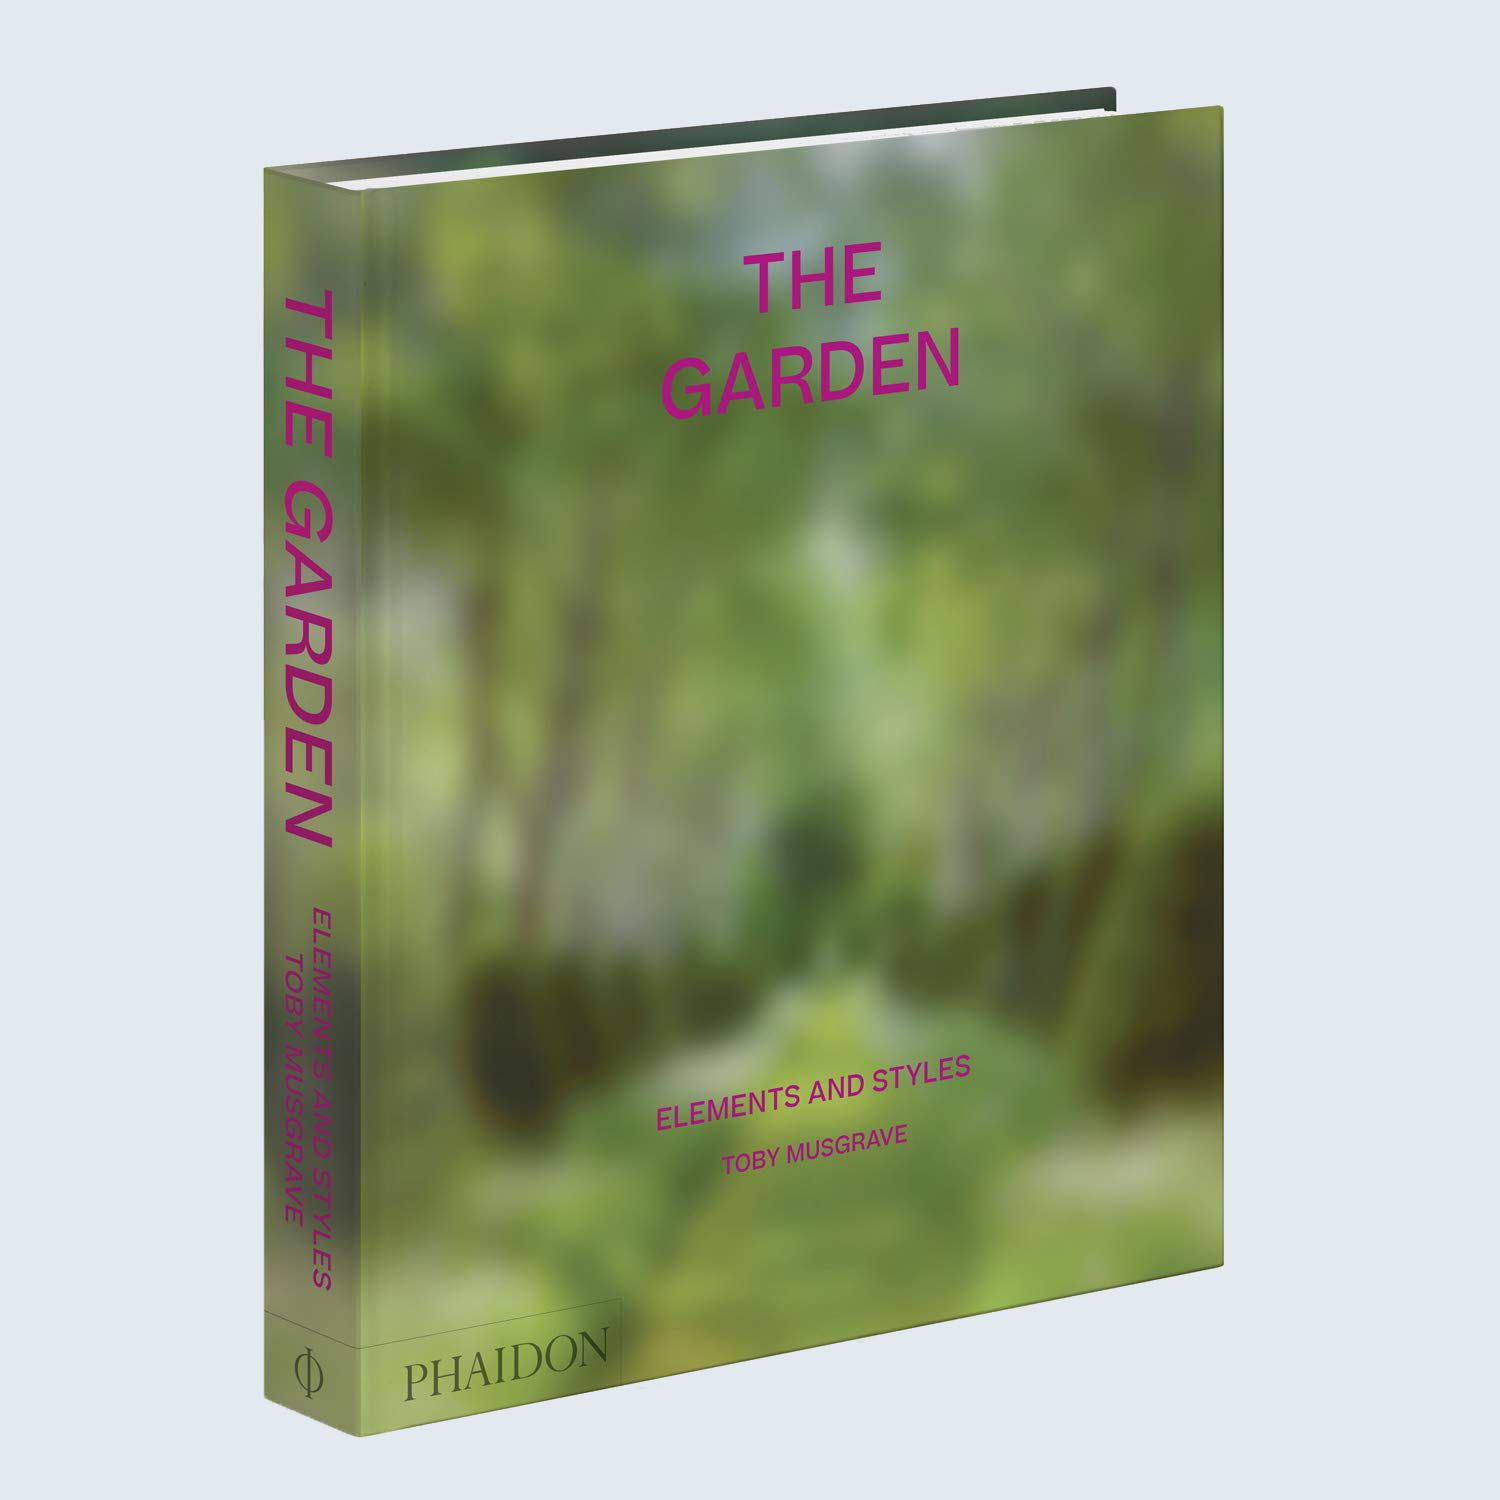 The Garden: Elements and Styles by Toby Musgrave